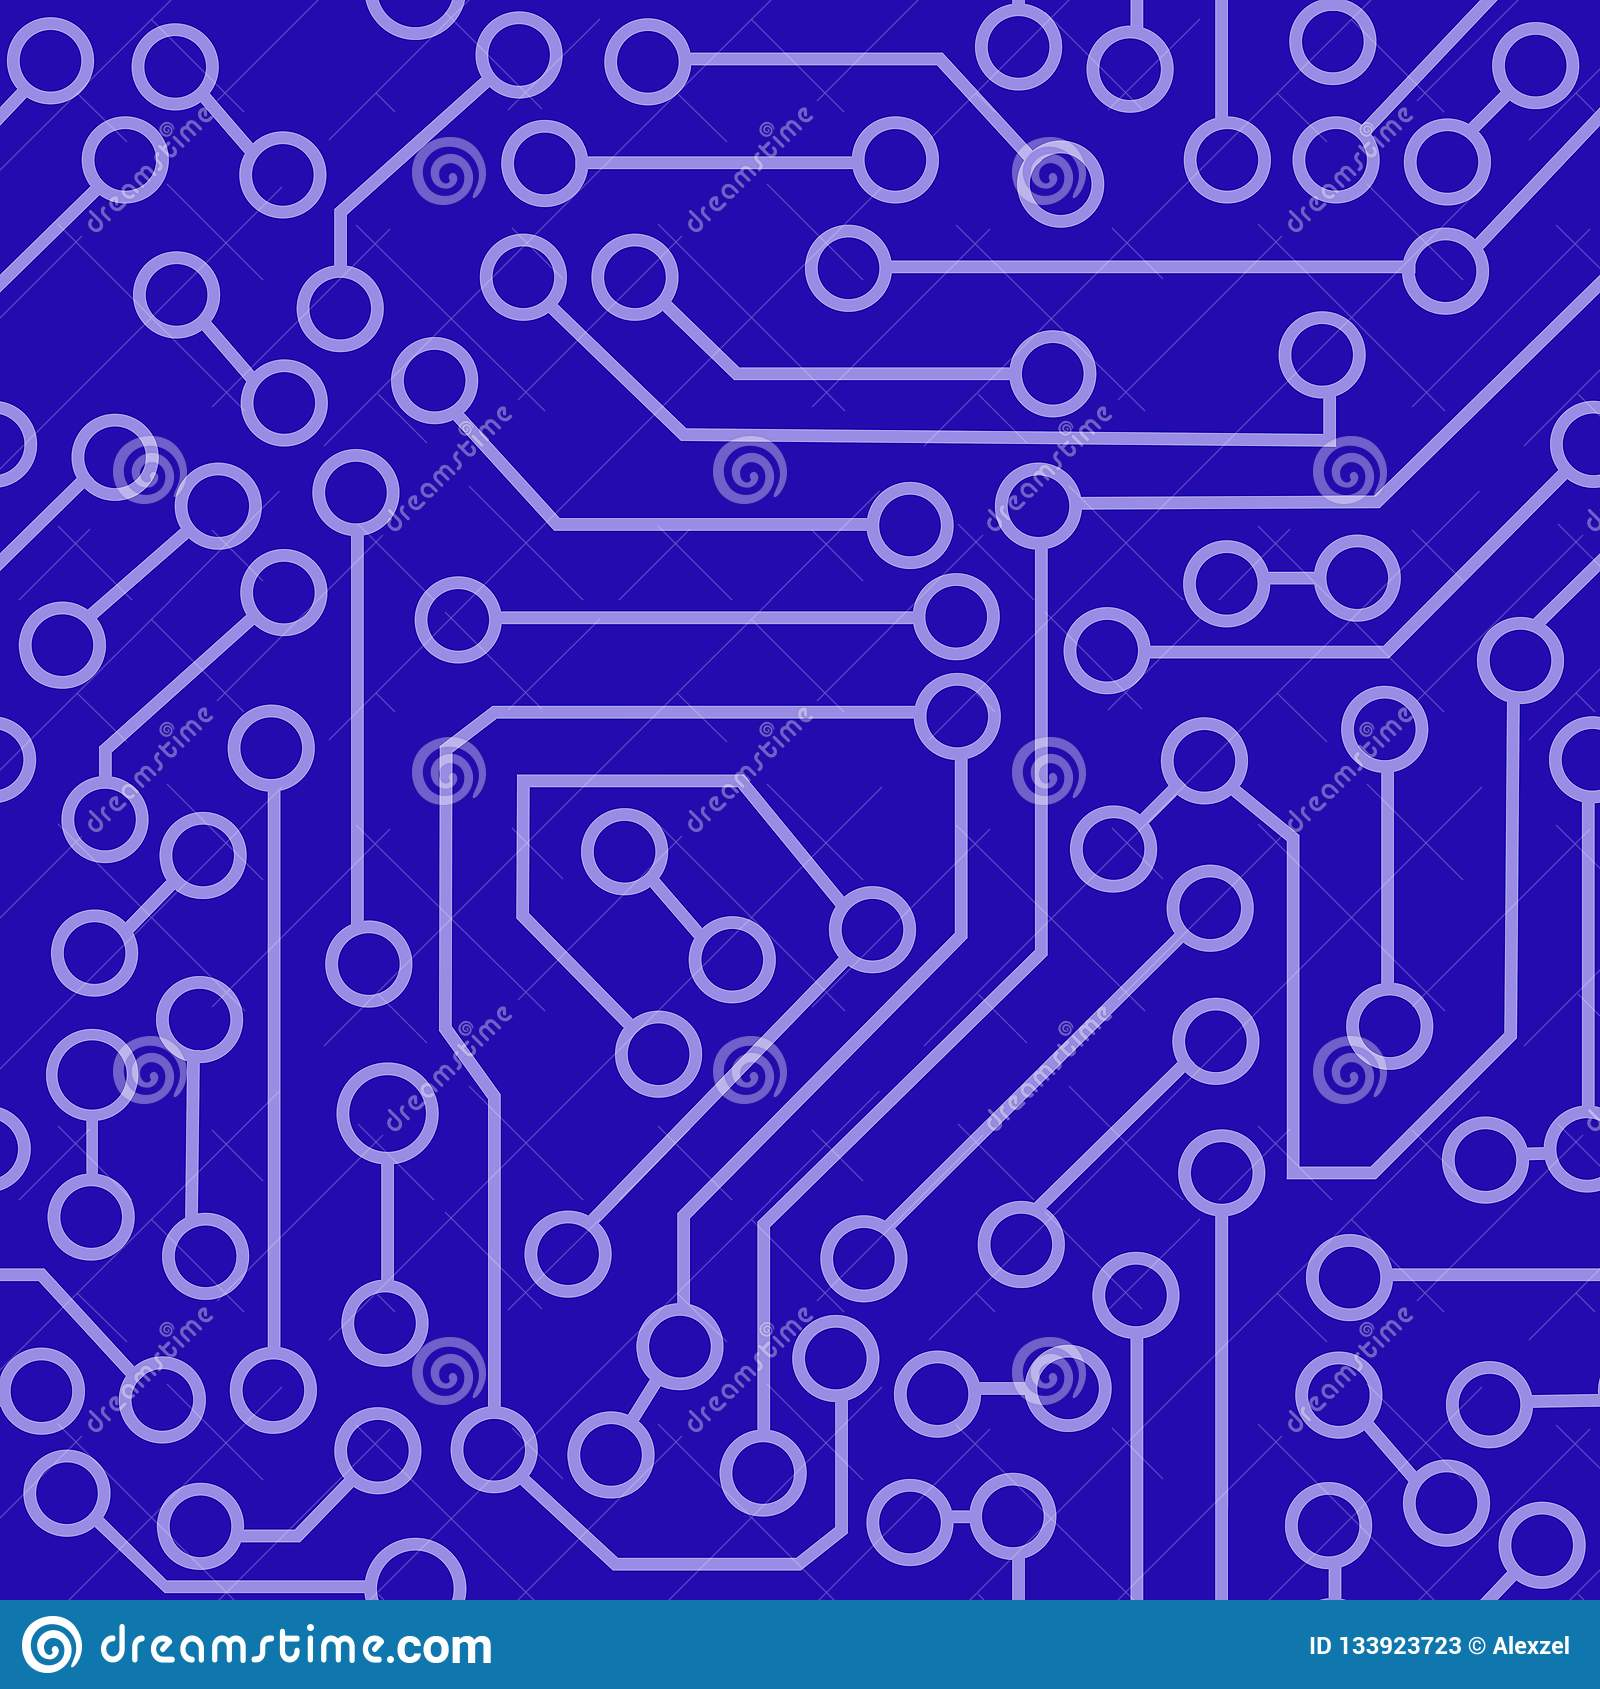 Pattern Of Electronic Circuit Stock Vector Illustration Of